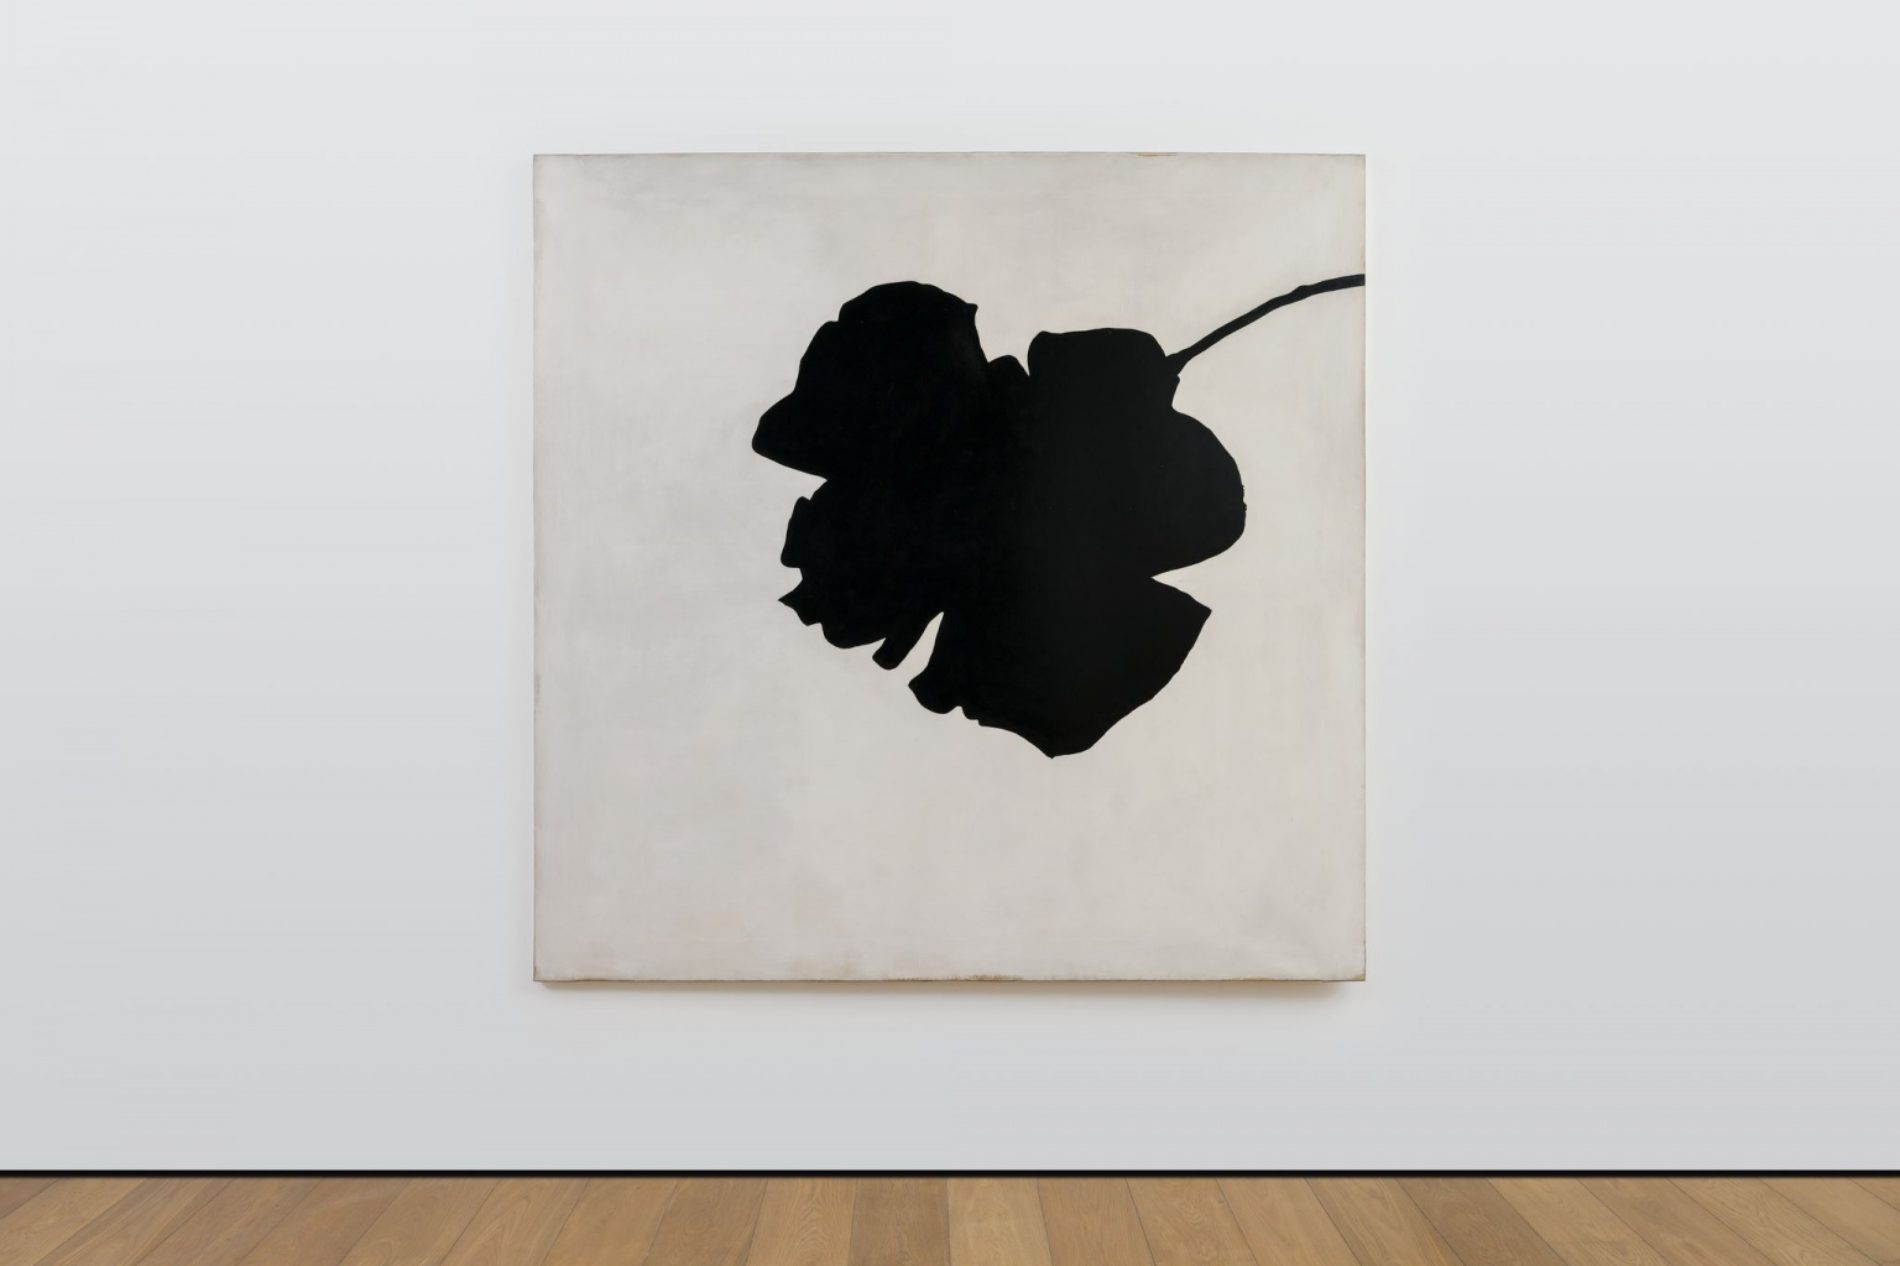 Jannis Kounellis / May 28 — July 27, 2019